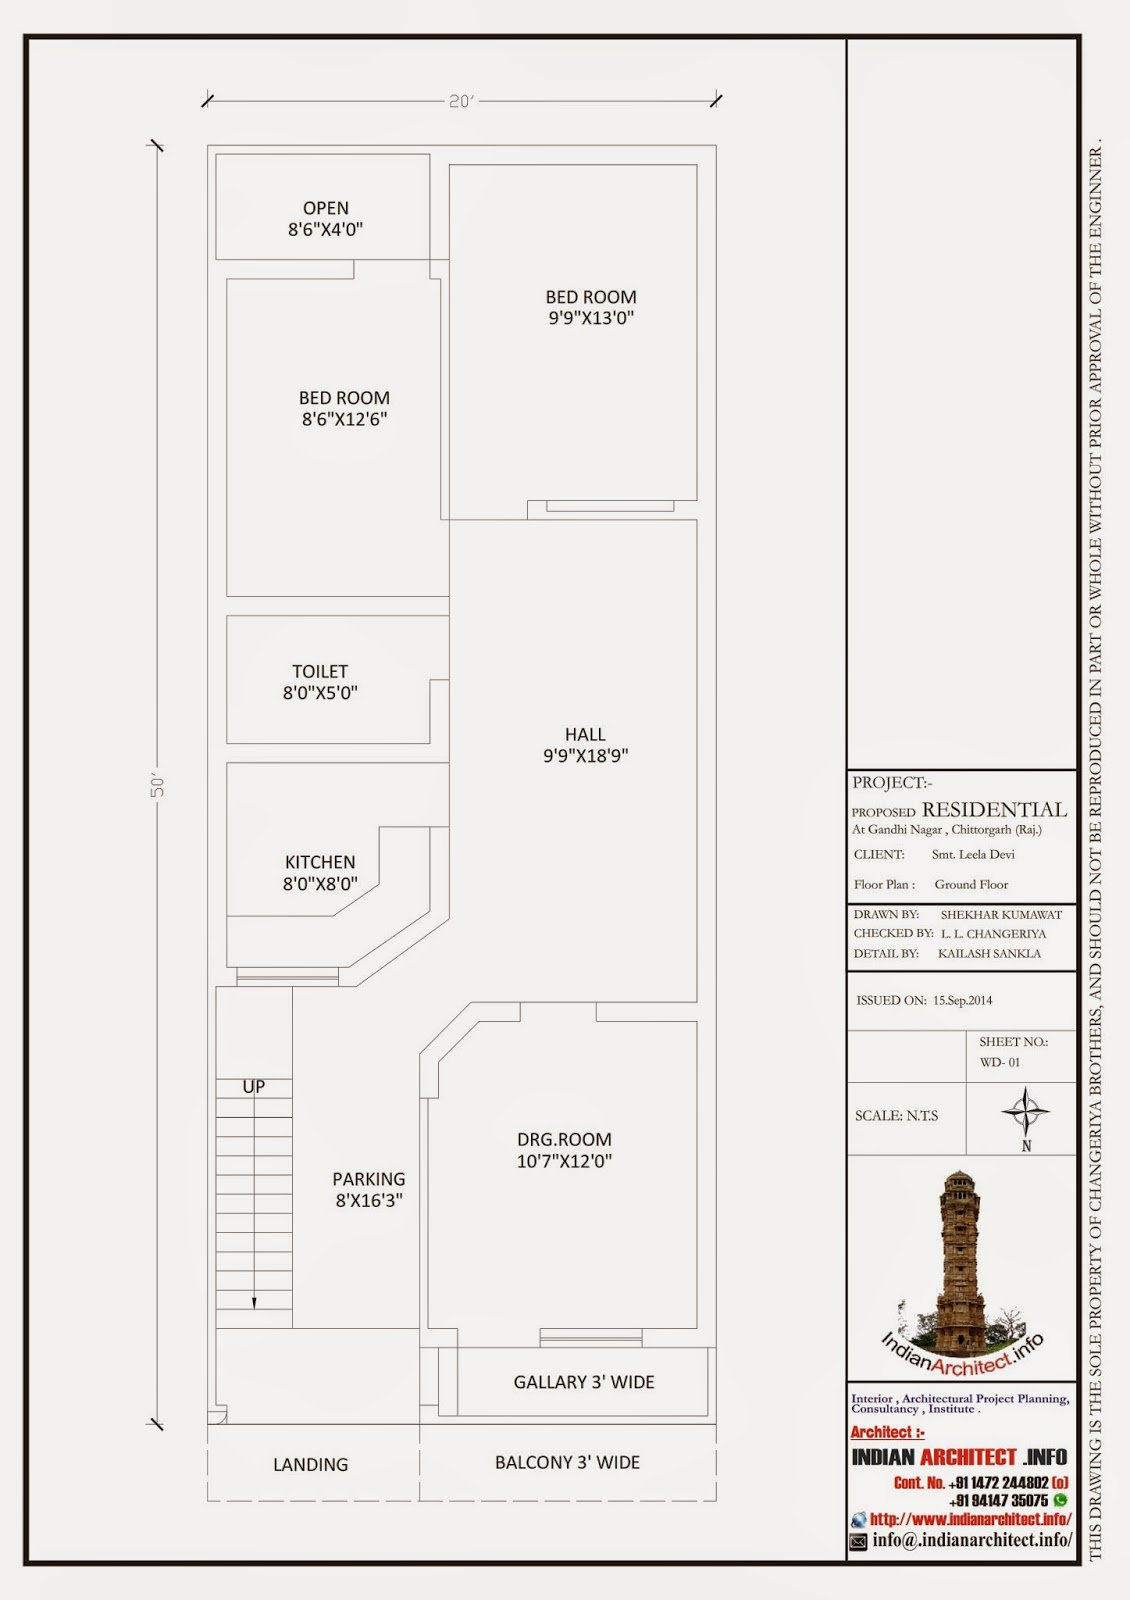 Smt Leela Devi House 20 X 50 1000 Sqft Floor Plan And